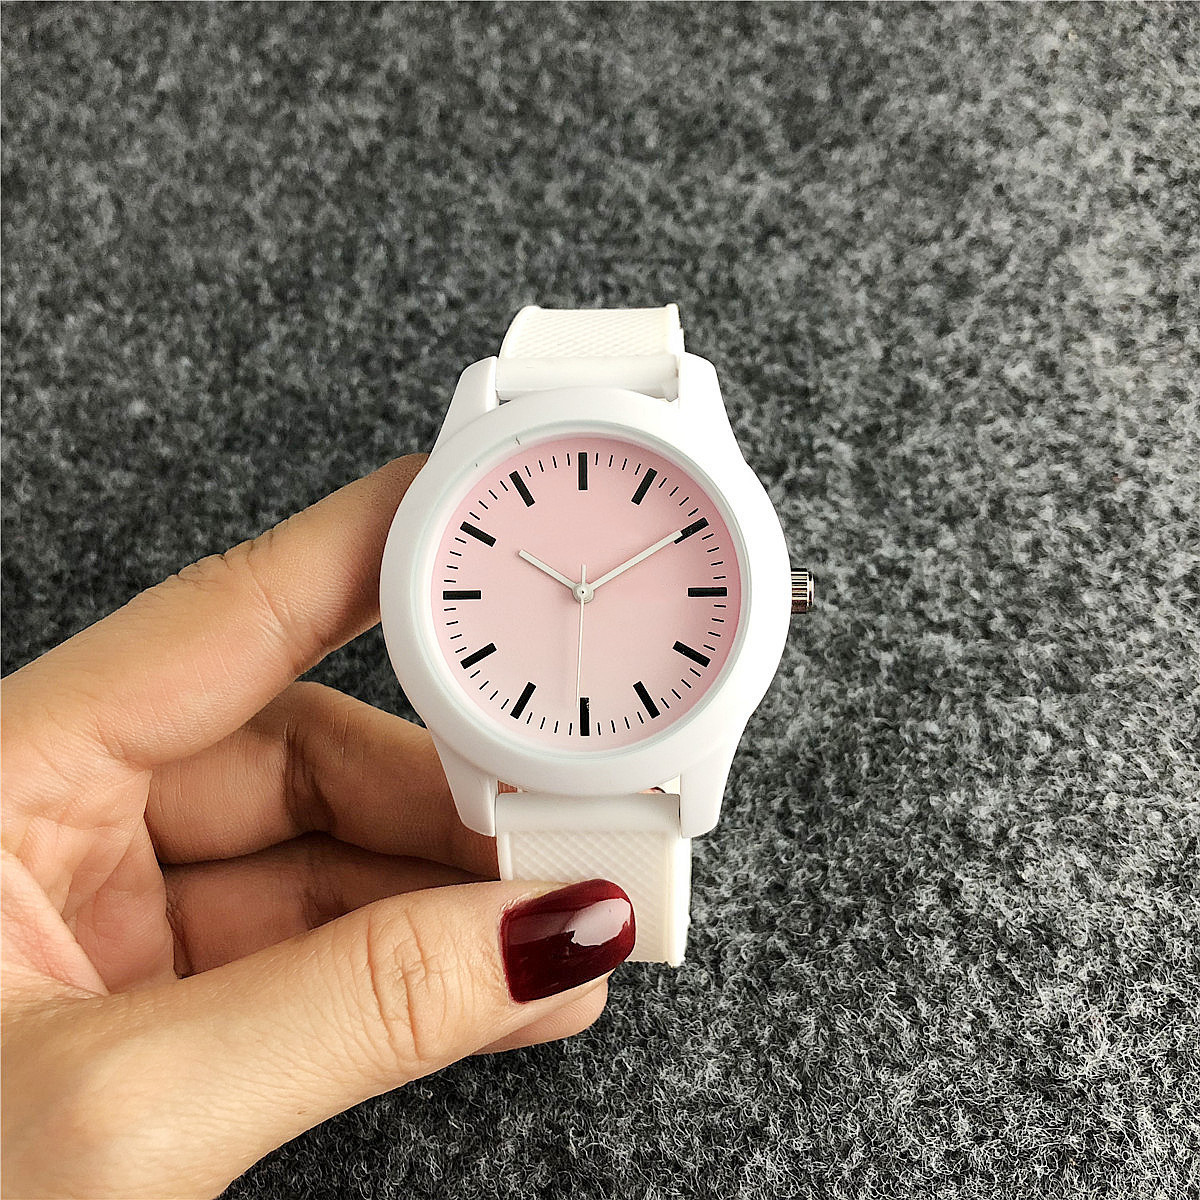 Relogio  watches  colorful silicone clock  fancy reloj  sport women girl child wristwatch rubber